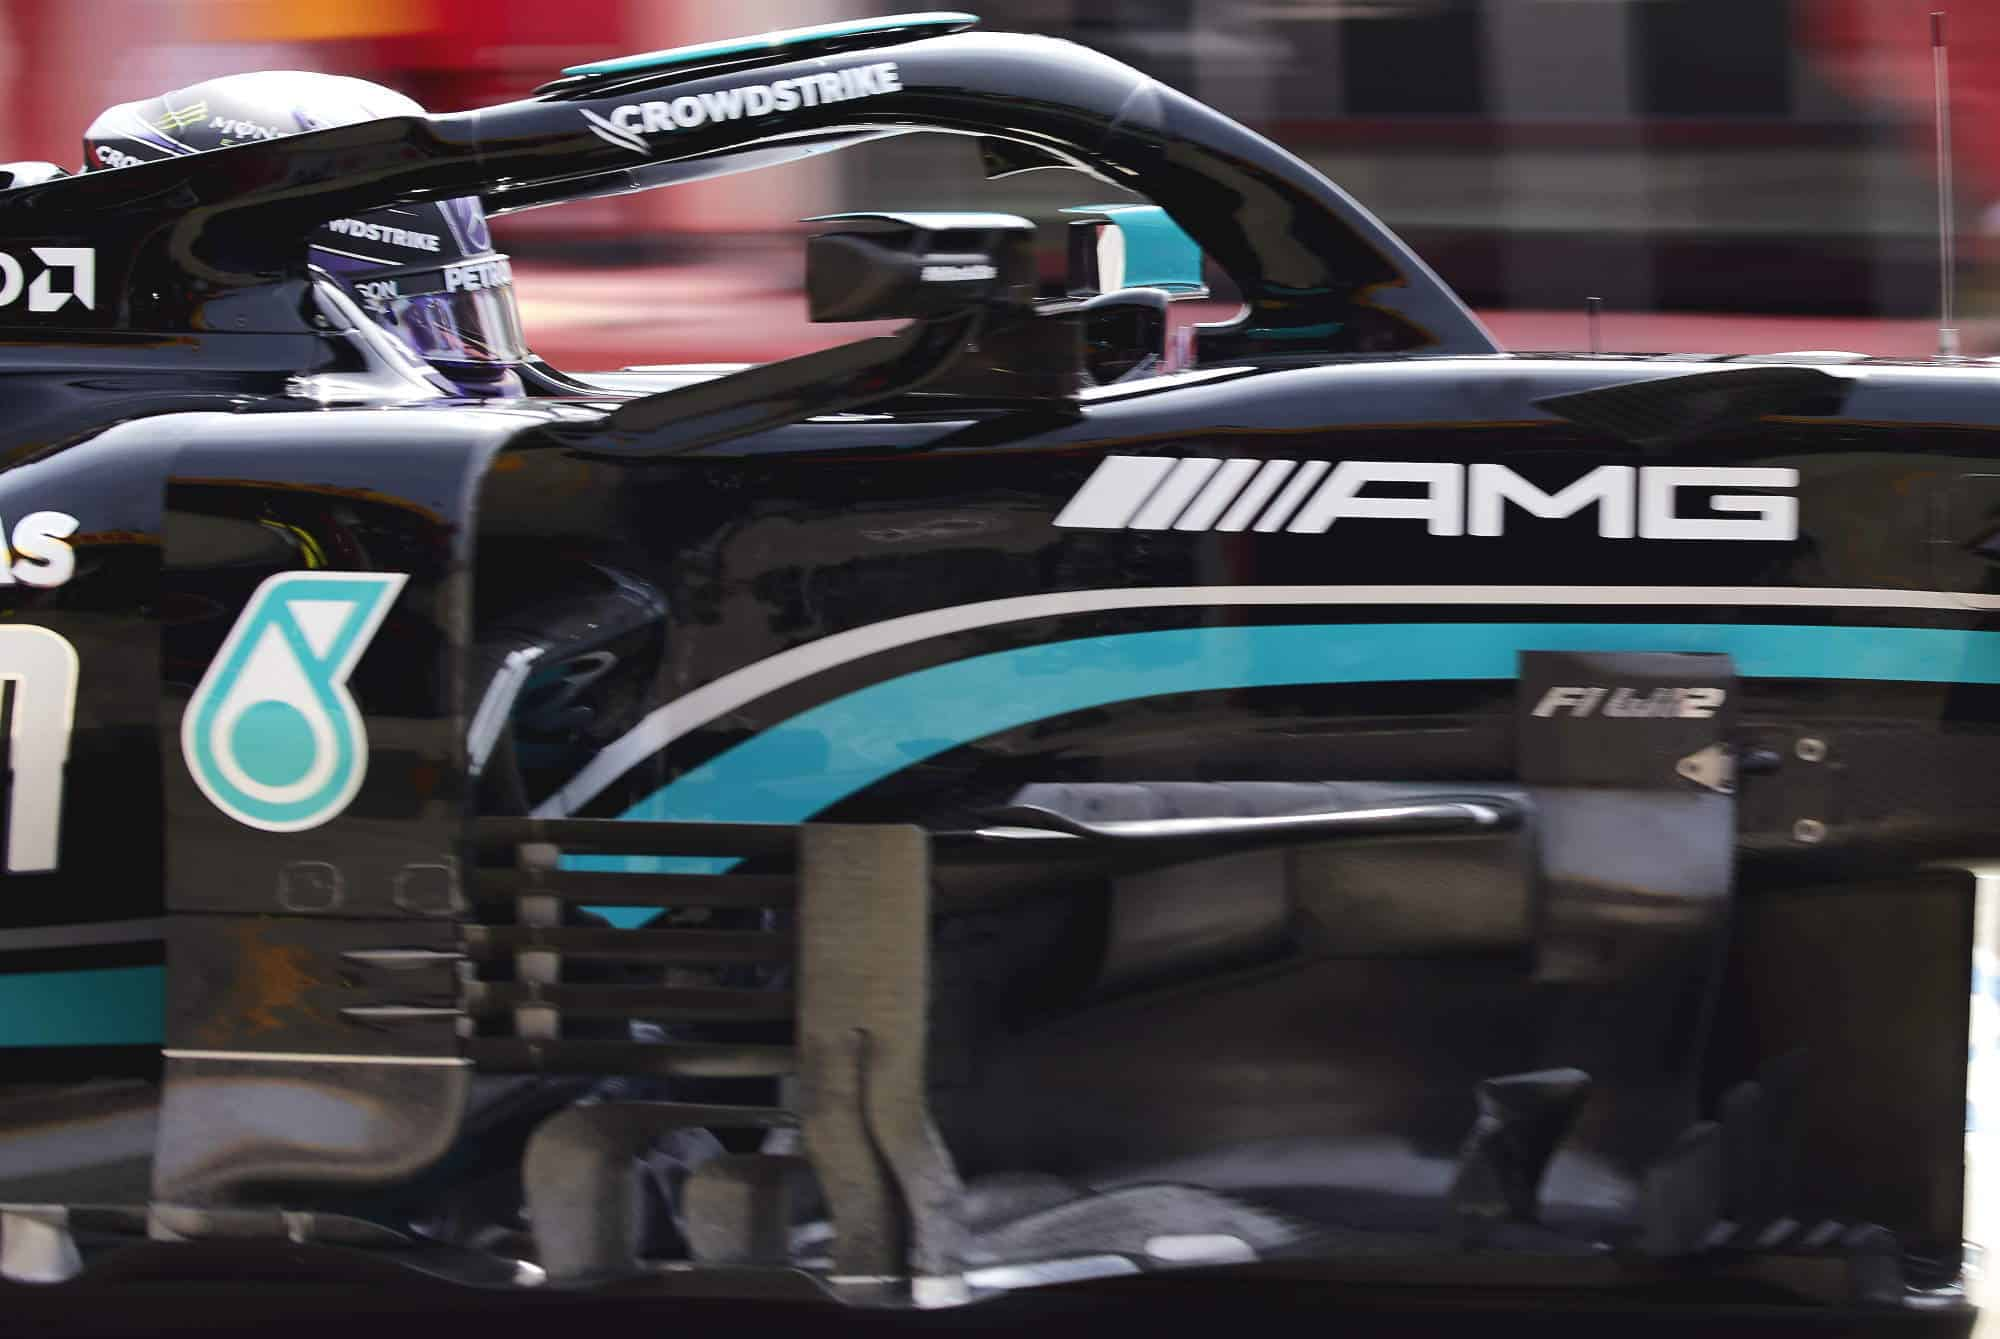 2021 Emilia Romagna GP Hamilton Mercedes F1 W12 side view bargeboards zoom detail tech Photo Daimler Edited by MAXF1net